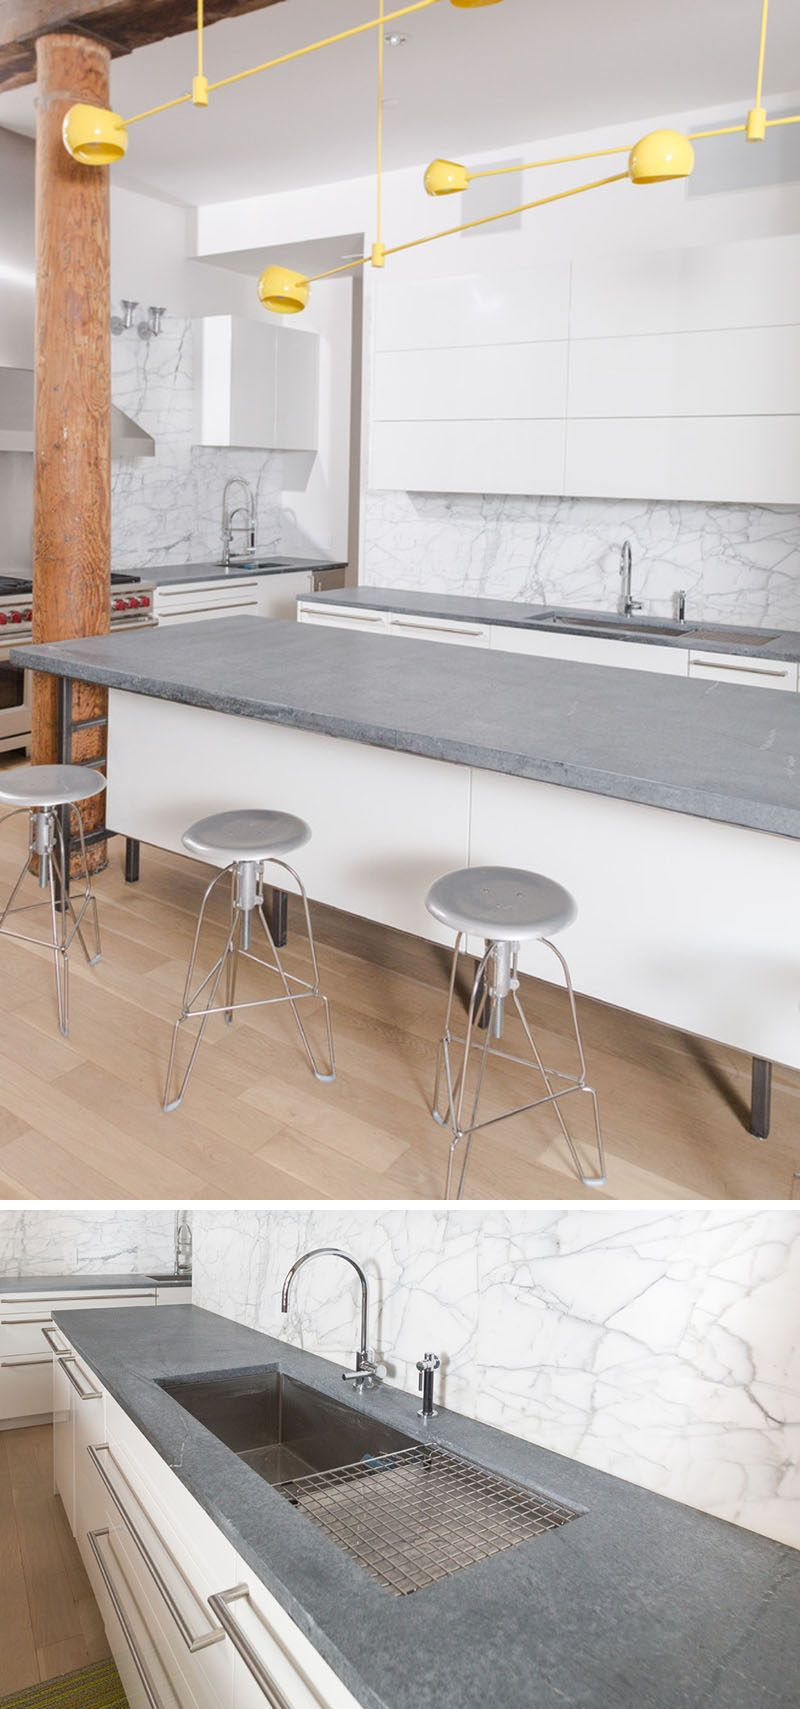 Enjoyable Kitchen Design Idea 5 Unconventional Materials You Can Use Interior Design Ideas Clesiryabchikinfo